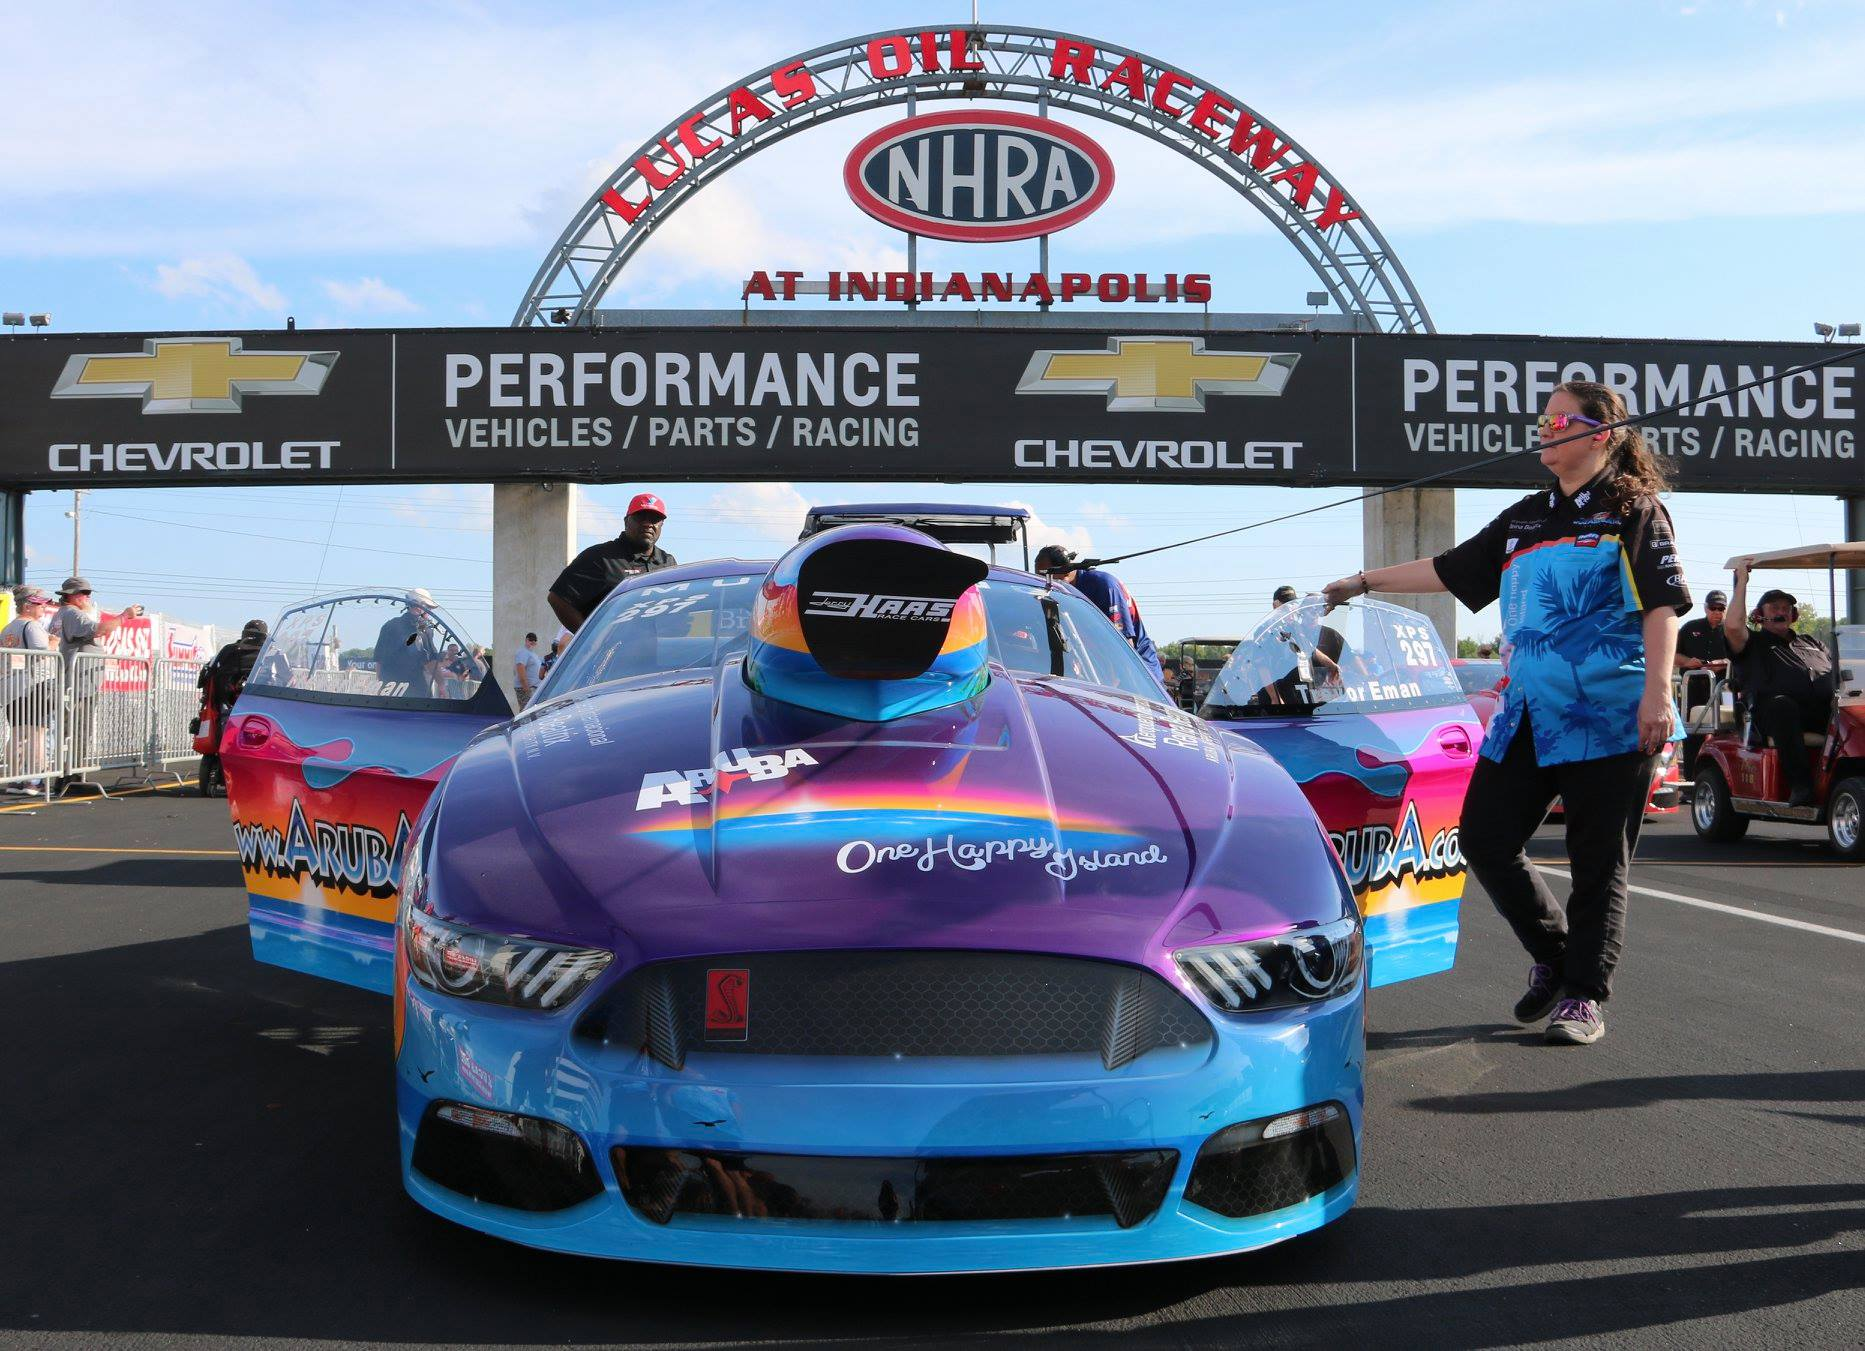 Team Aruba readies for 2019 tour, including four NHRA nationals